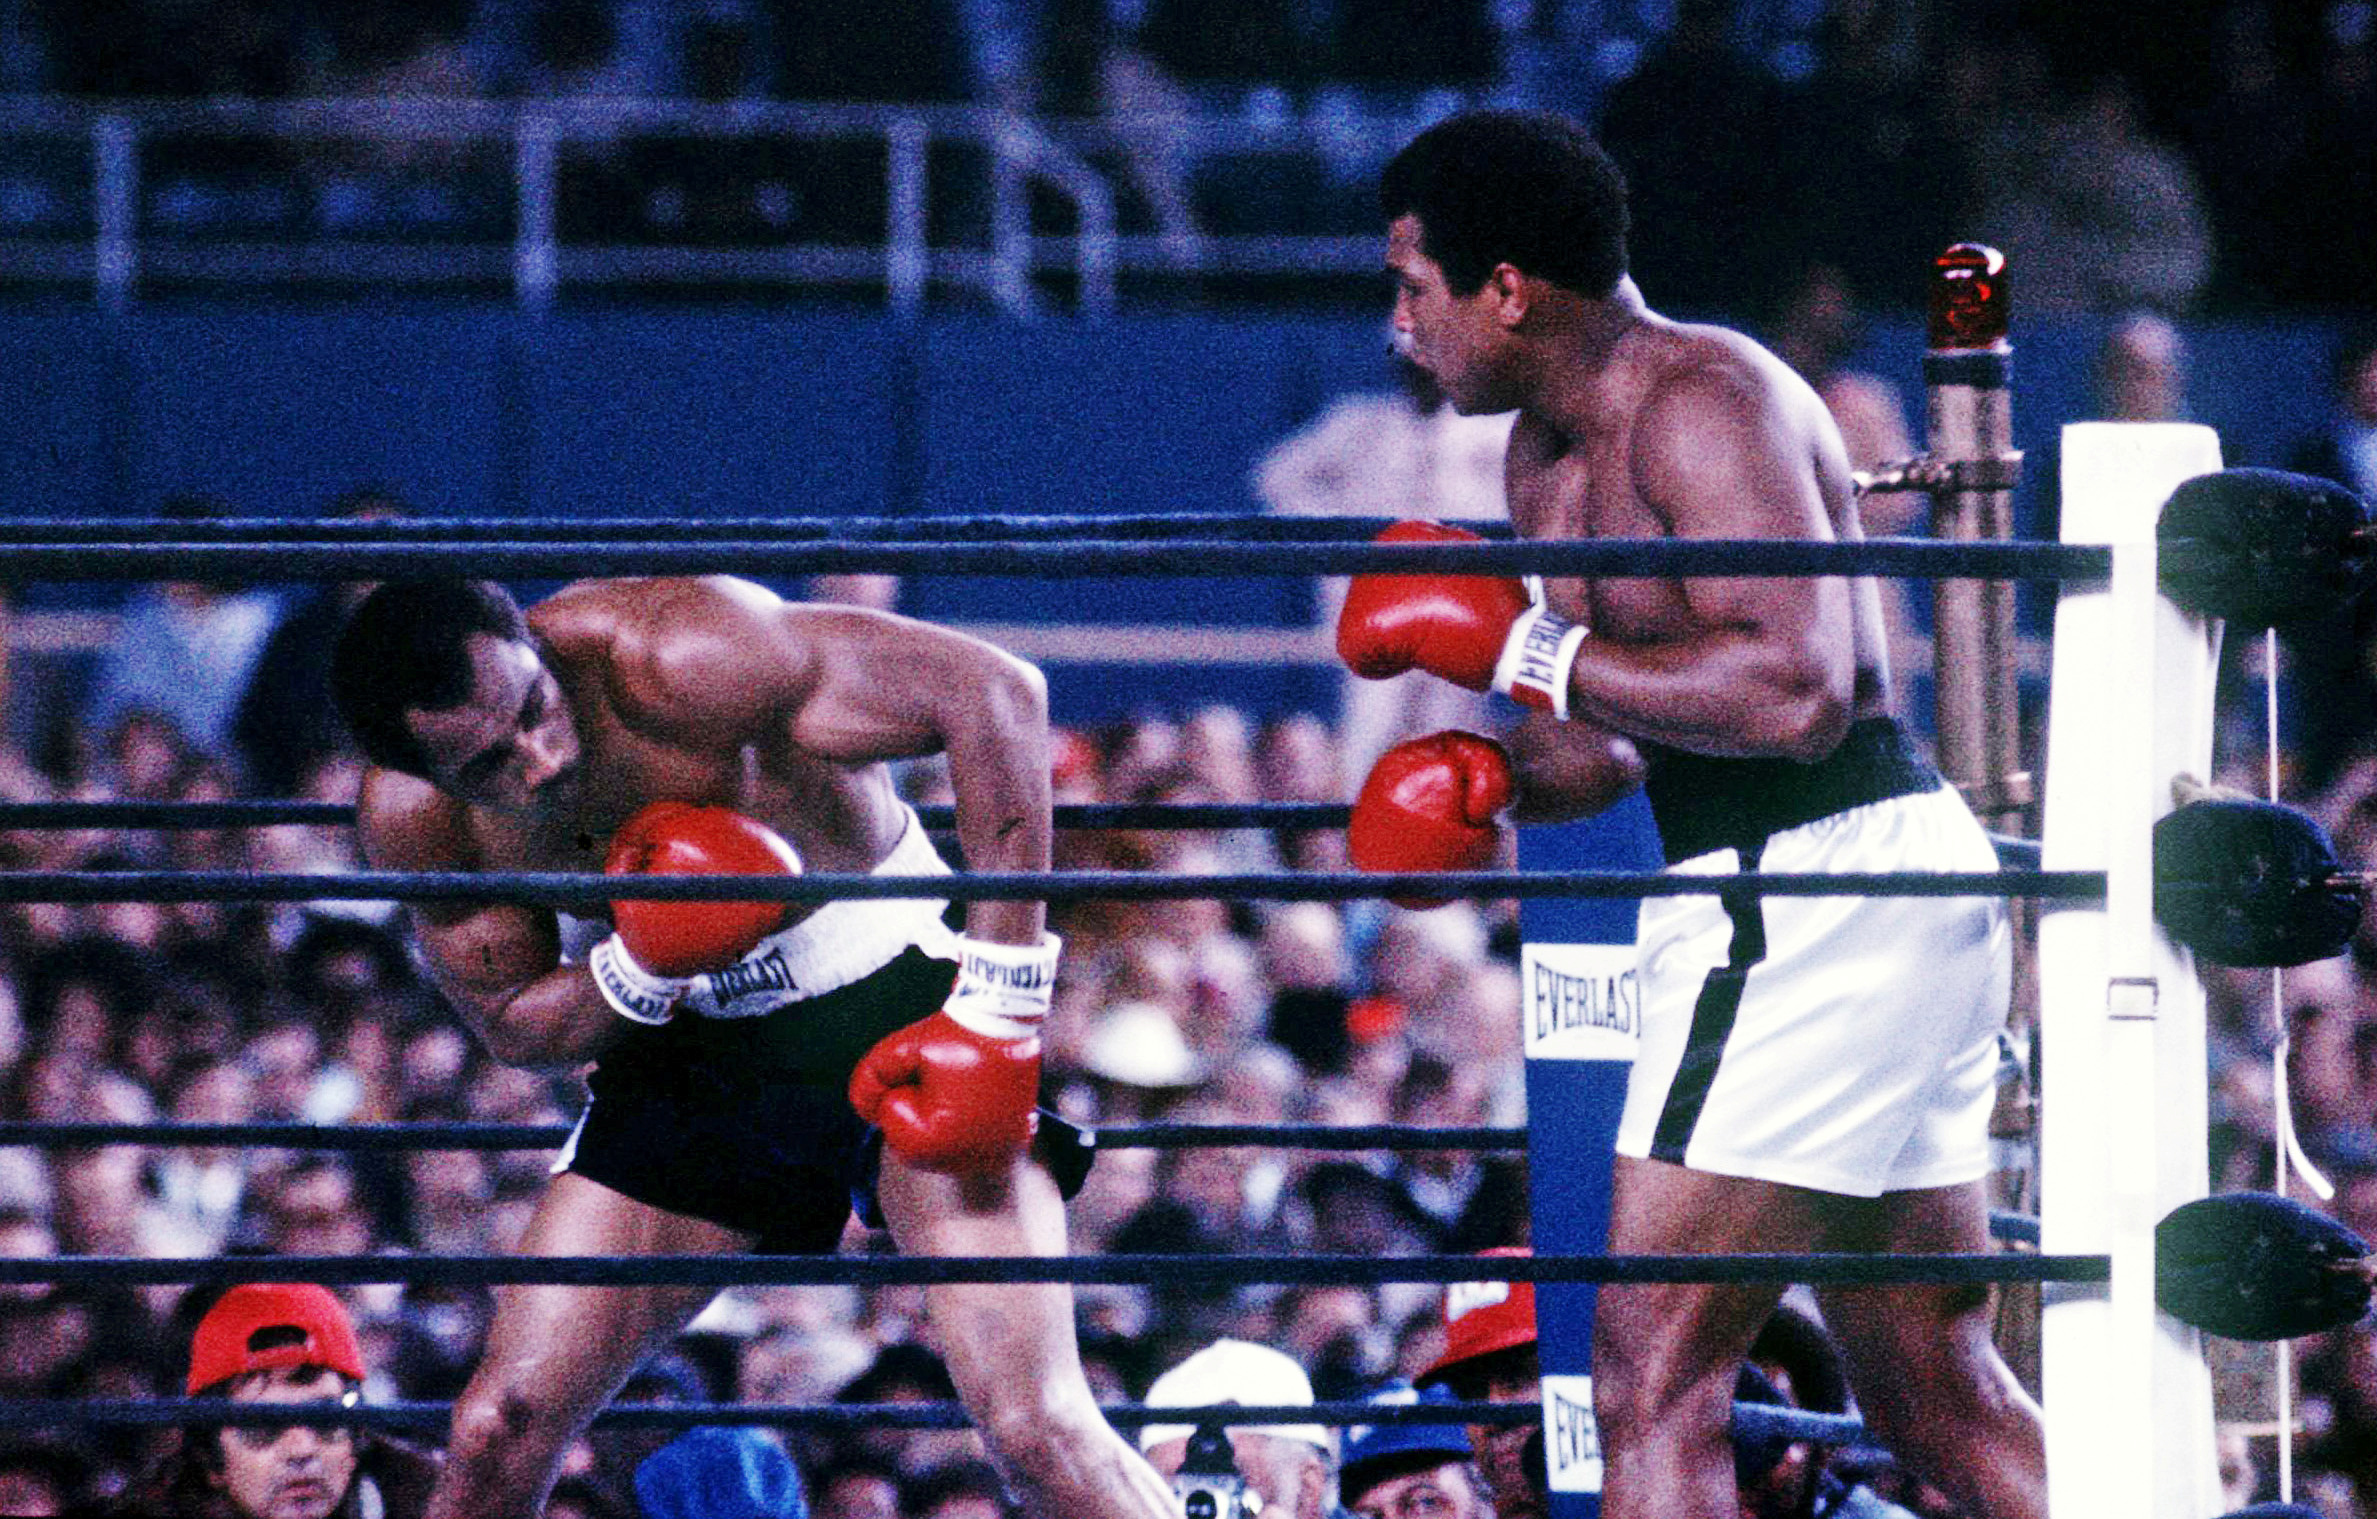 Muhammad Ali (right) fights Ken Norton at Yankee Stadium in the third fight between the two heavyweights in New York City on Sept. 28, 1976. File photo by Action Images/MSI via Reuters